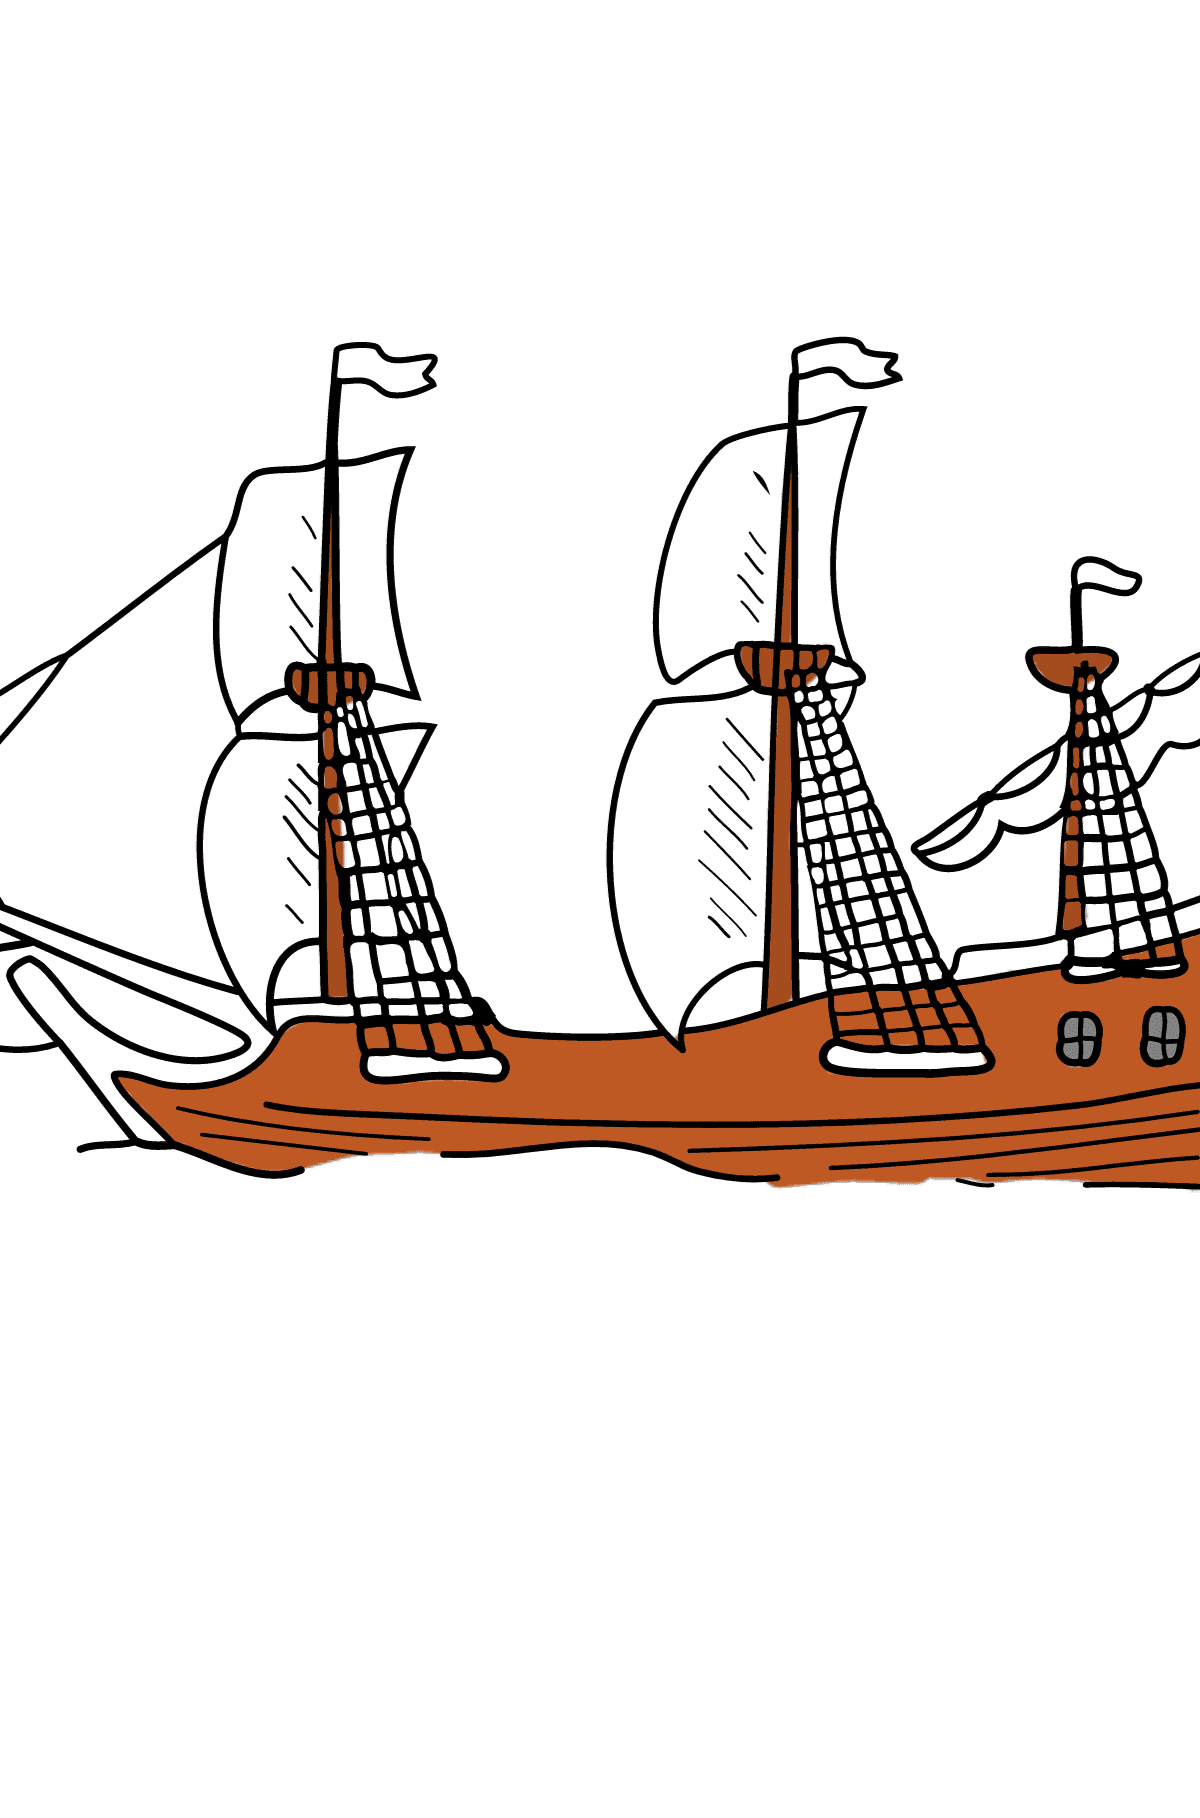 Coloring Page - A Galleon with Sails - Coloring Pages for Children